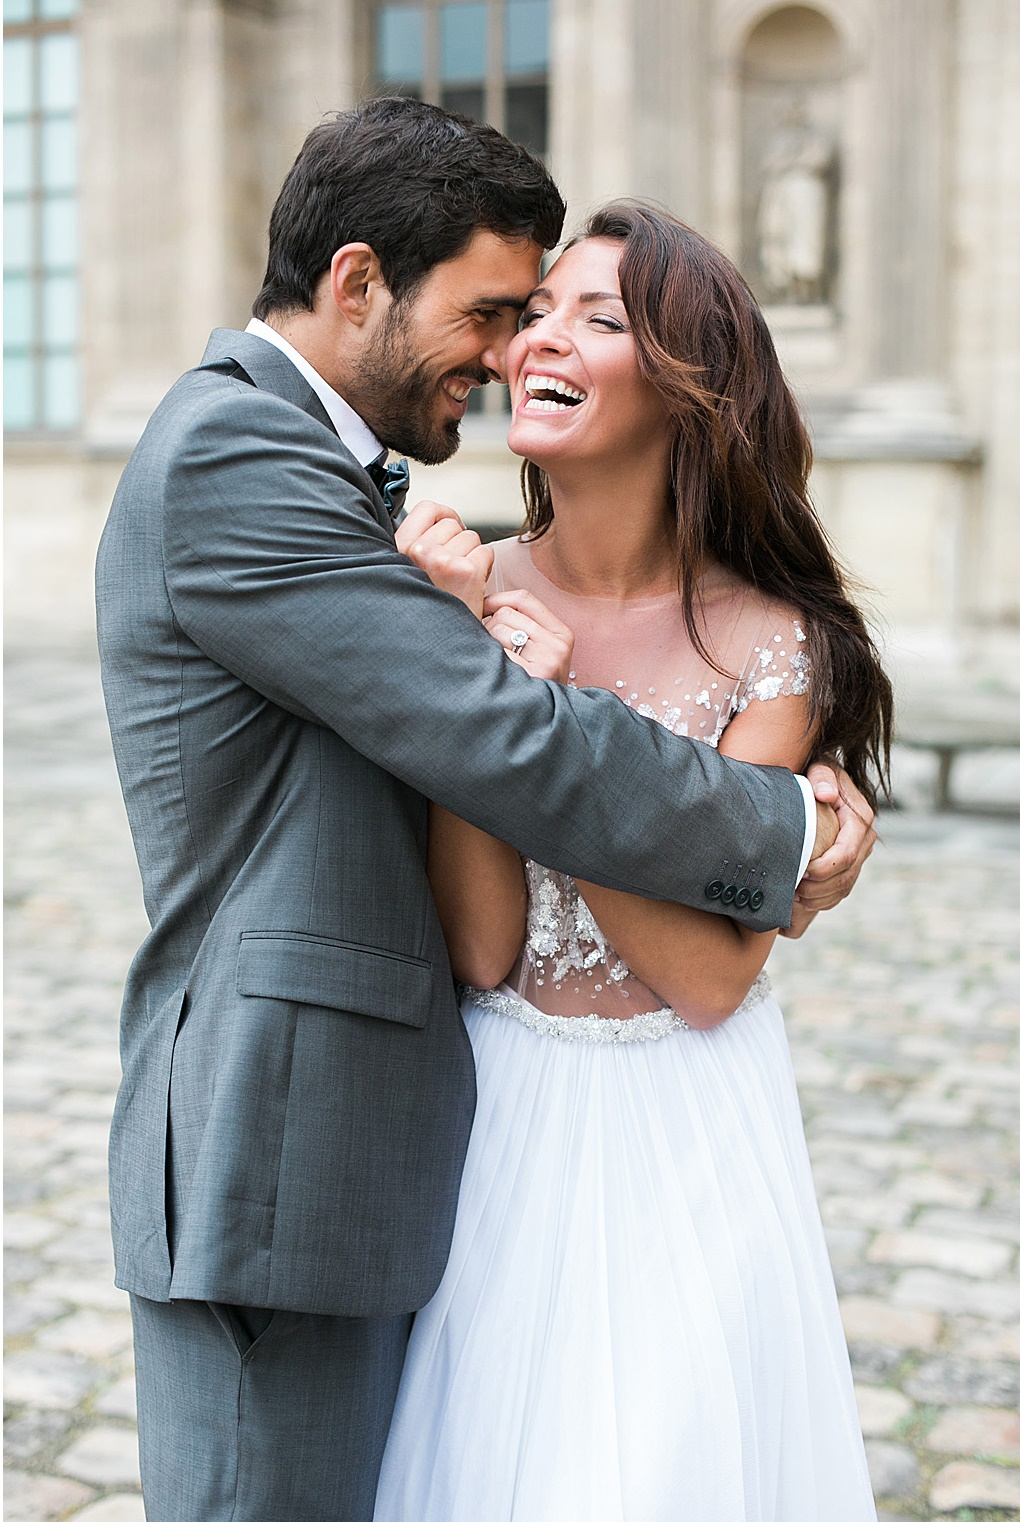 celebrate-wedding-in-paris-dorothee-le-goater-01